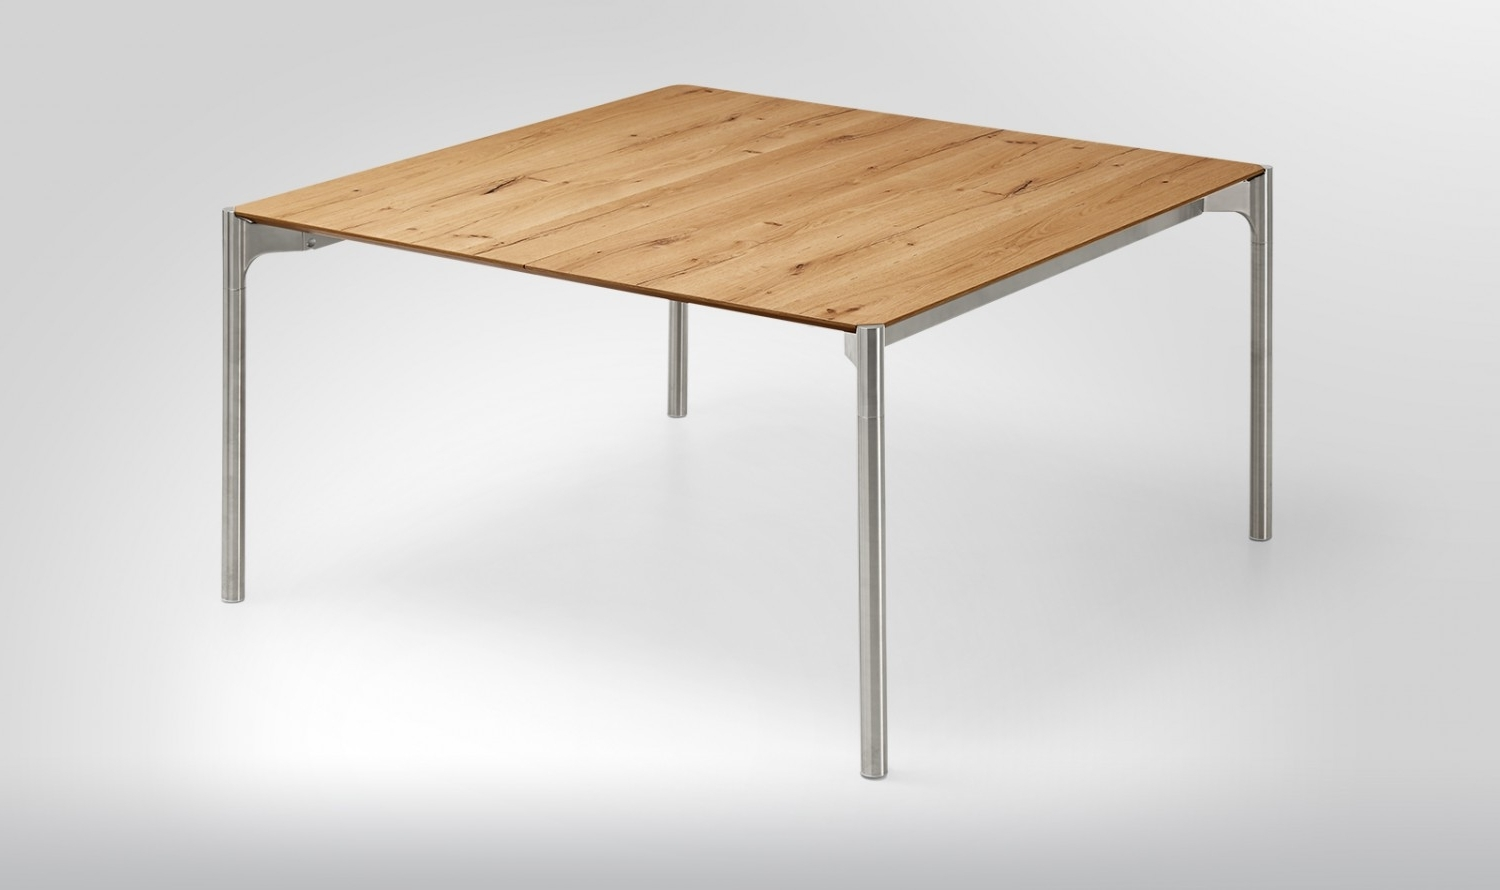 Venjakob Et239 Mio Square Extendable Dining Table With Regard To Latest Square Extendable Dining Tables (View 17 of 25)